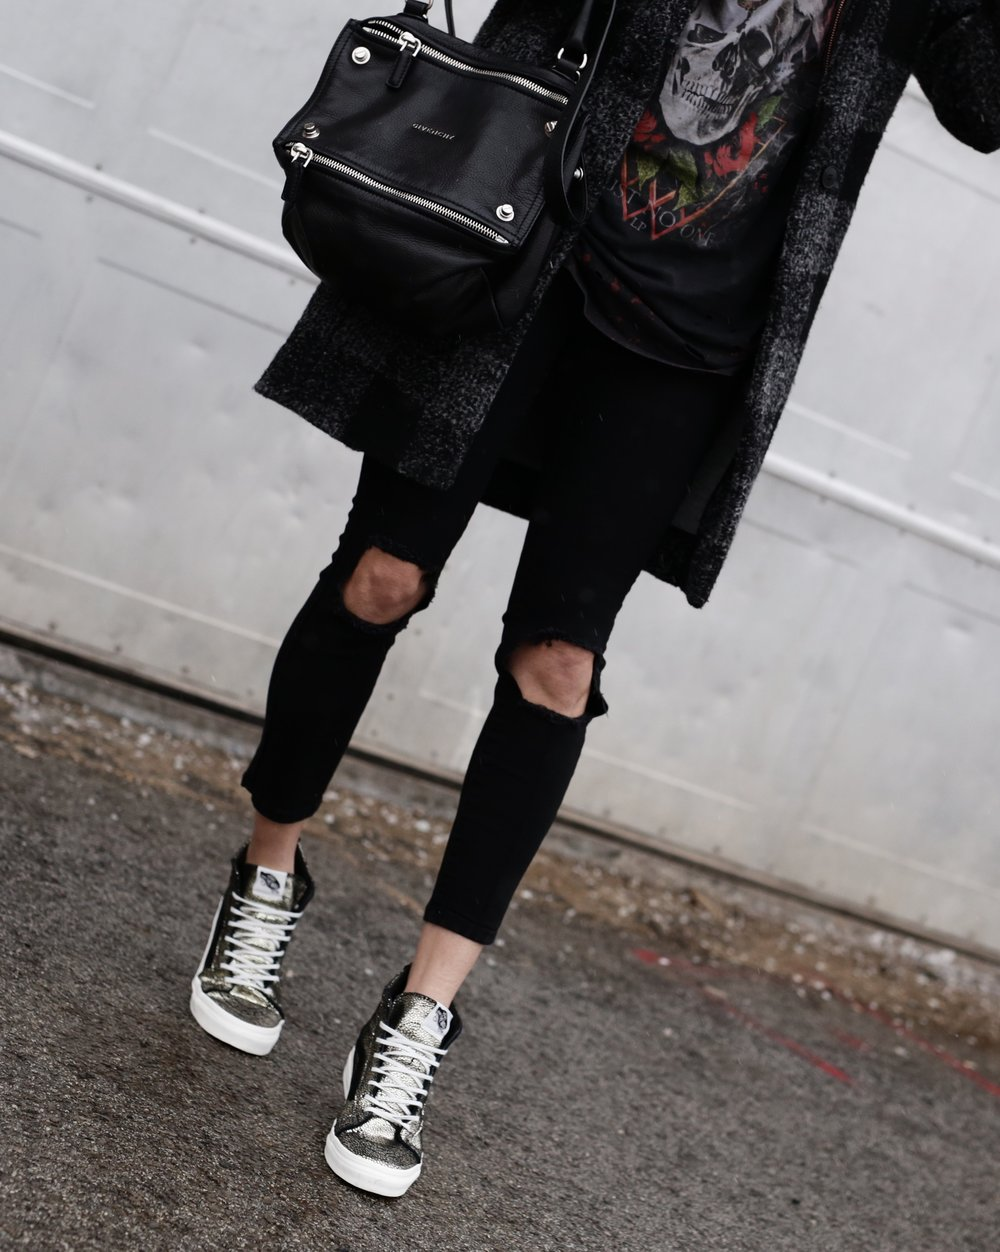 Givenchy Pandora bag, gold Vans SK8-HI sneakers, hoodie, casual street style -10 Statement Sneakers To Buy Now, glitter, metallic, neon, white canvas_7327.JPG